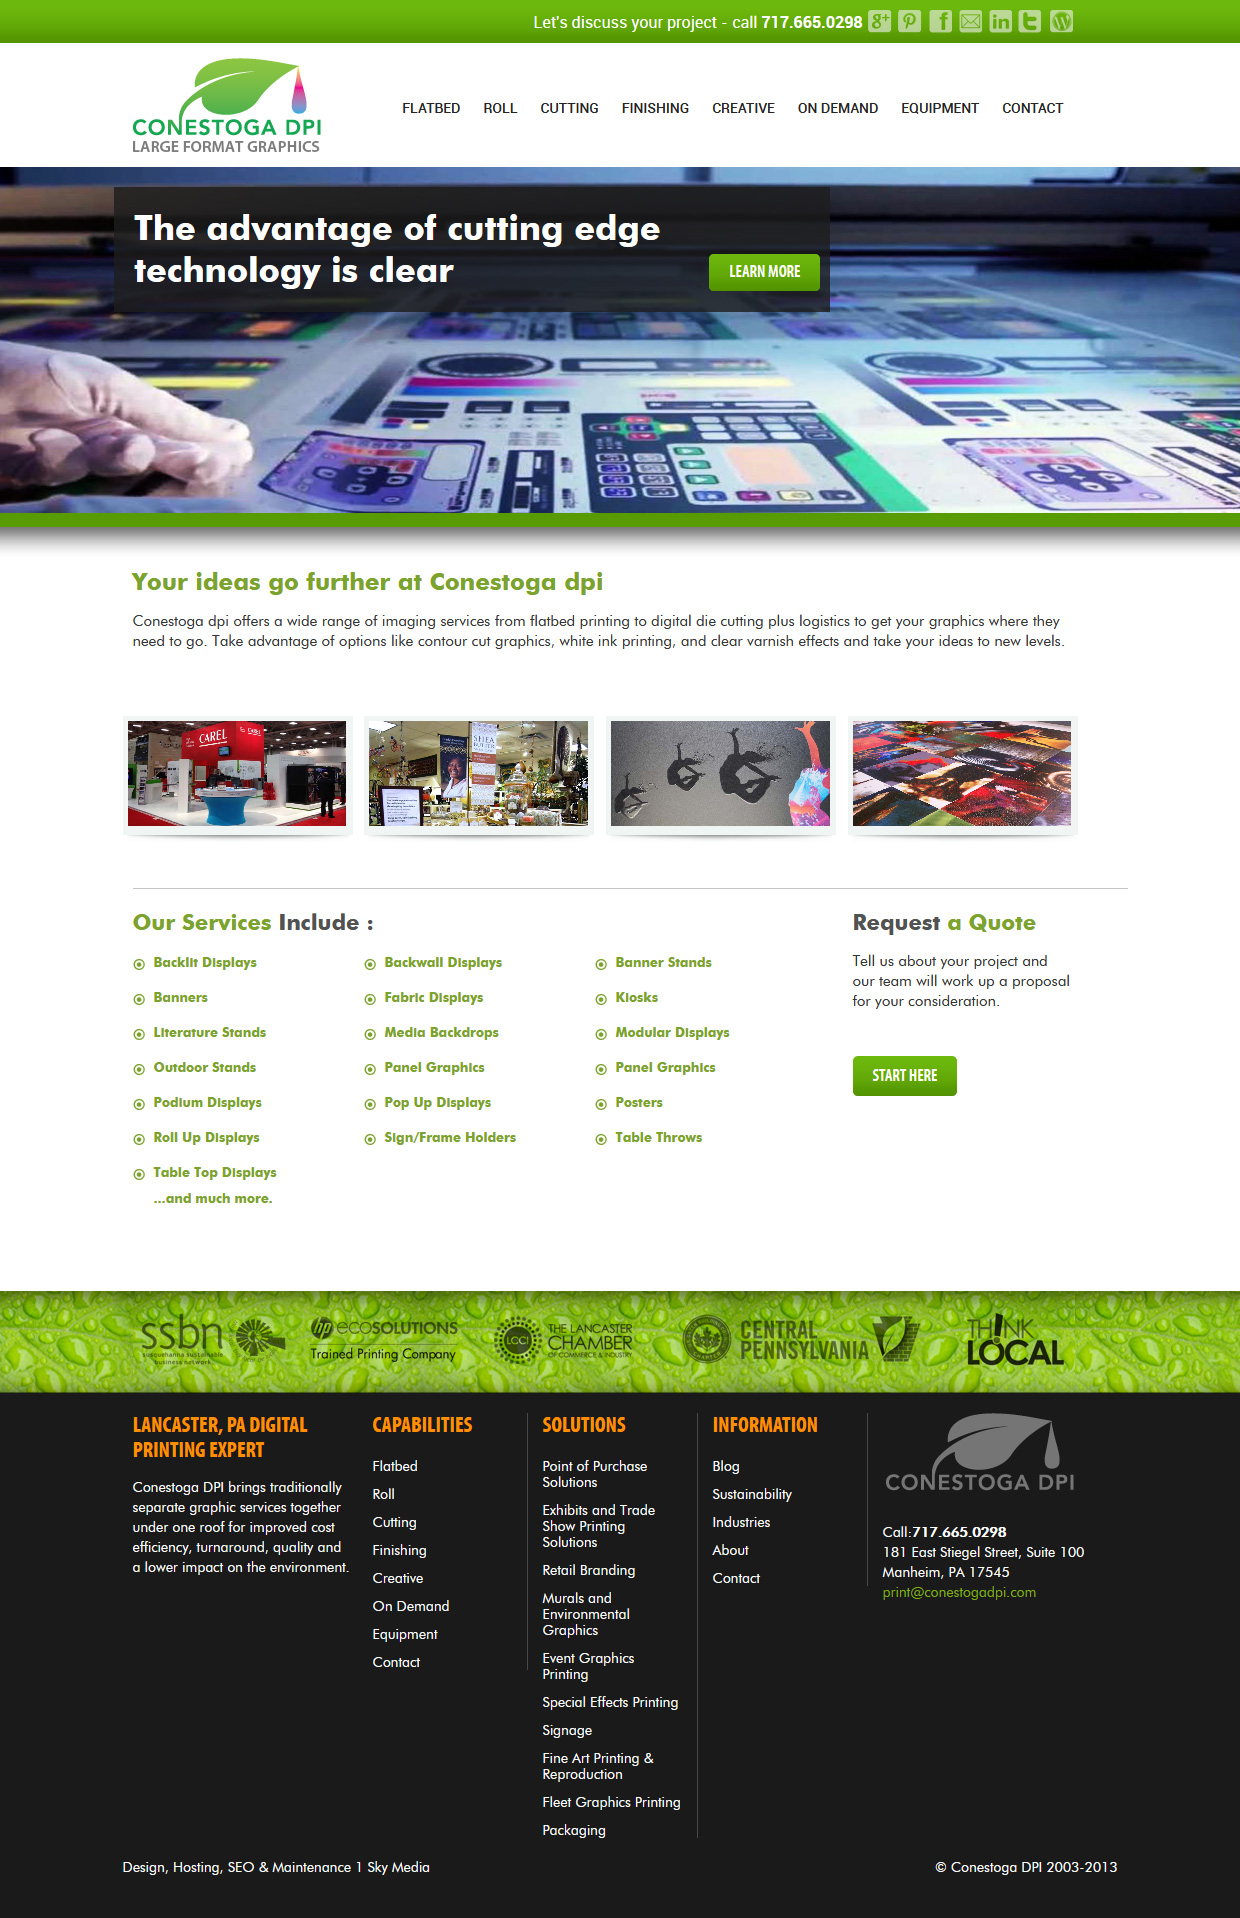 Conestoga DPI large format printer website design